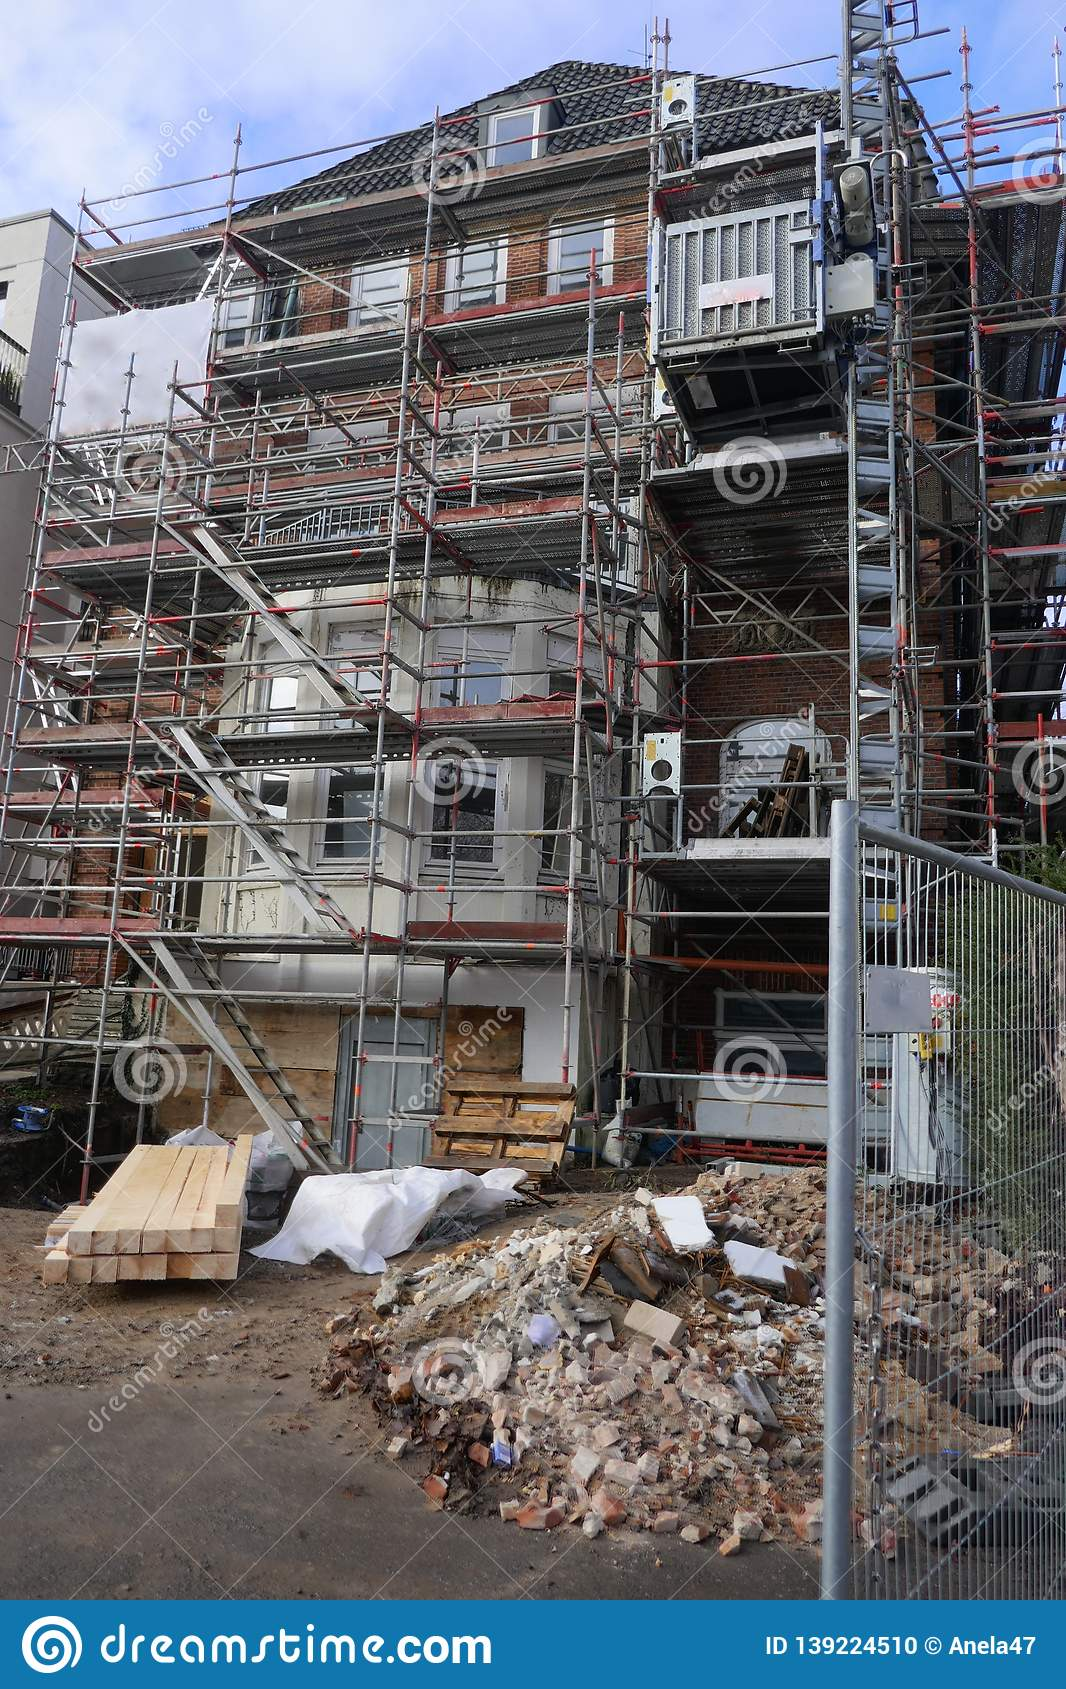 House facade with scaffolding, renovation and reconstruction of an old villa in Hamburg, Germany